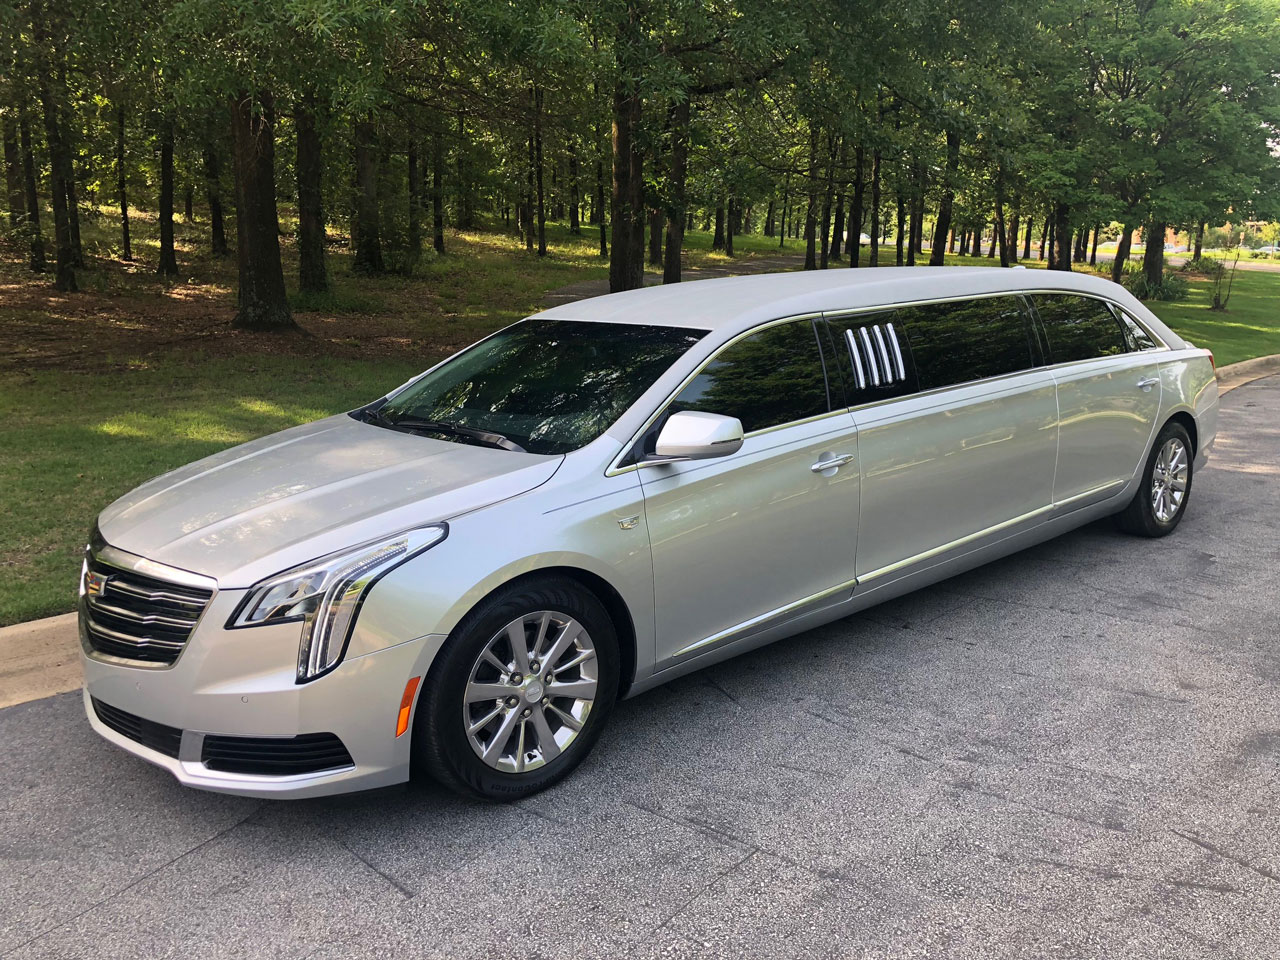 2019 Armbruster Stageway Cadillac 70 Stretch Limousine 15